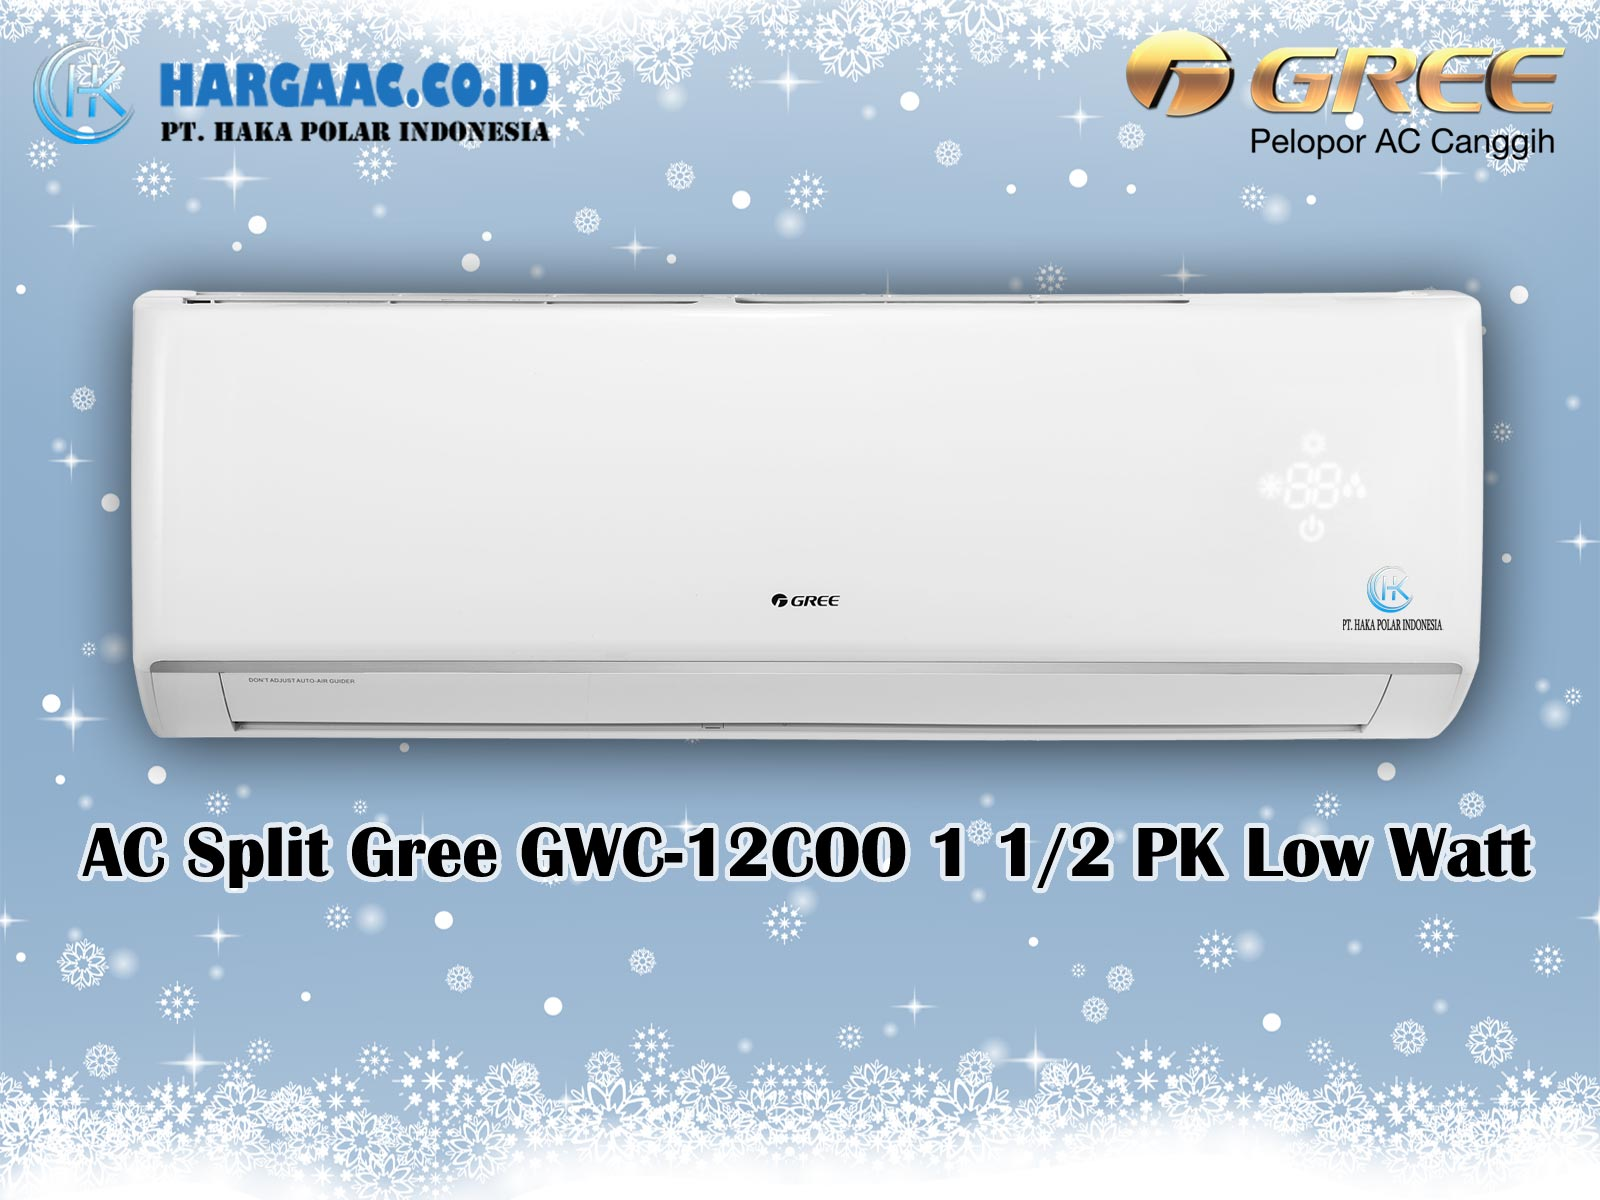 Harga Jual AC Split Gree GWC-12COO 1,5 PK Low Watt Voltage